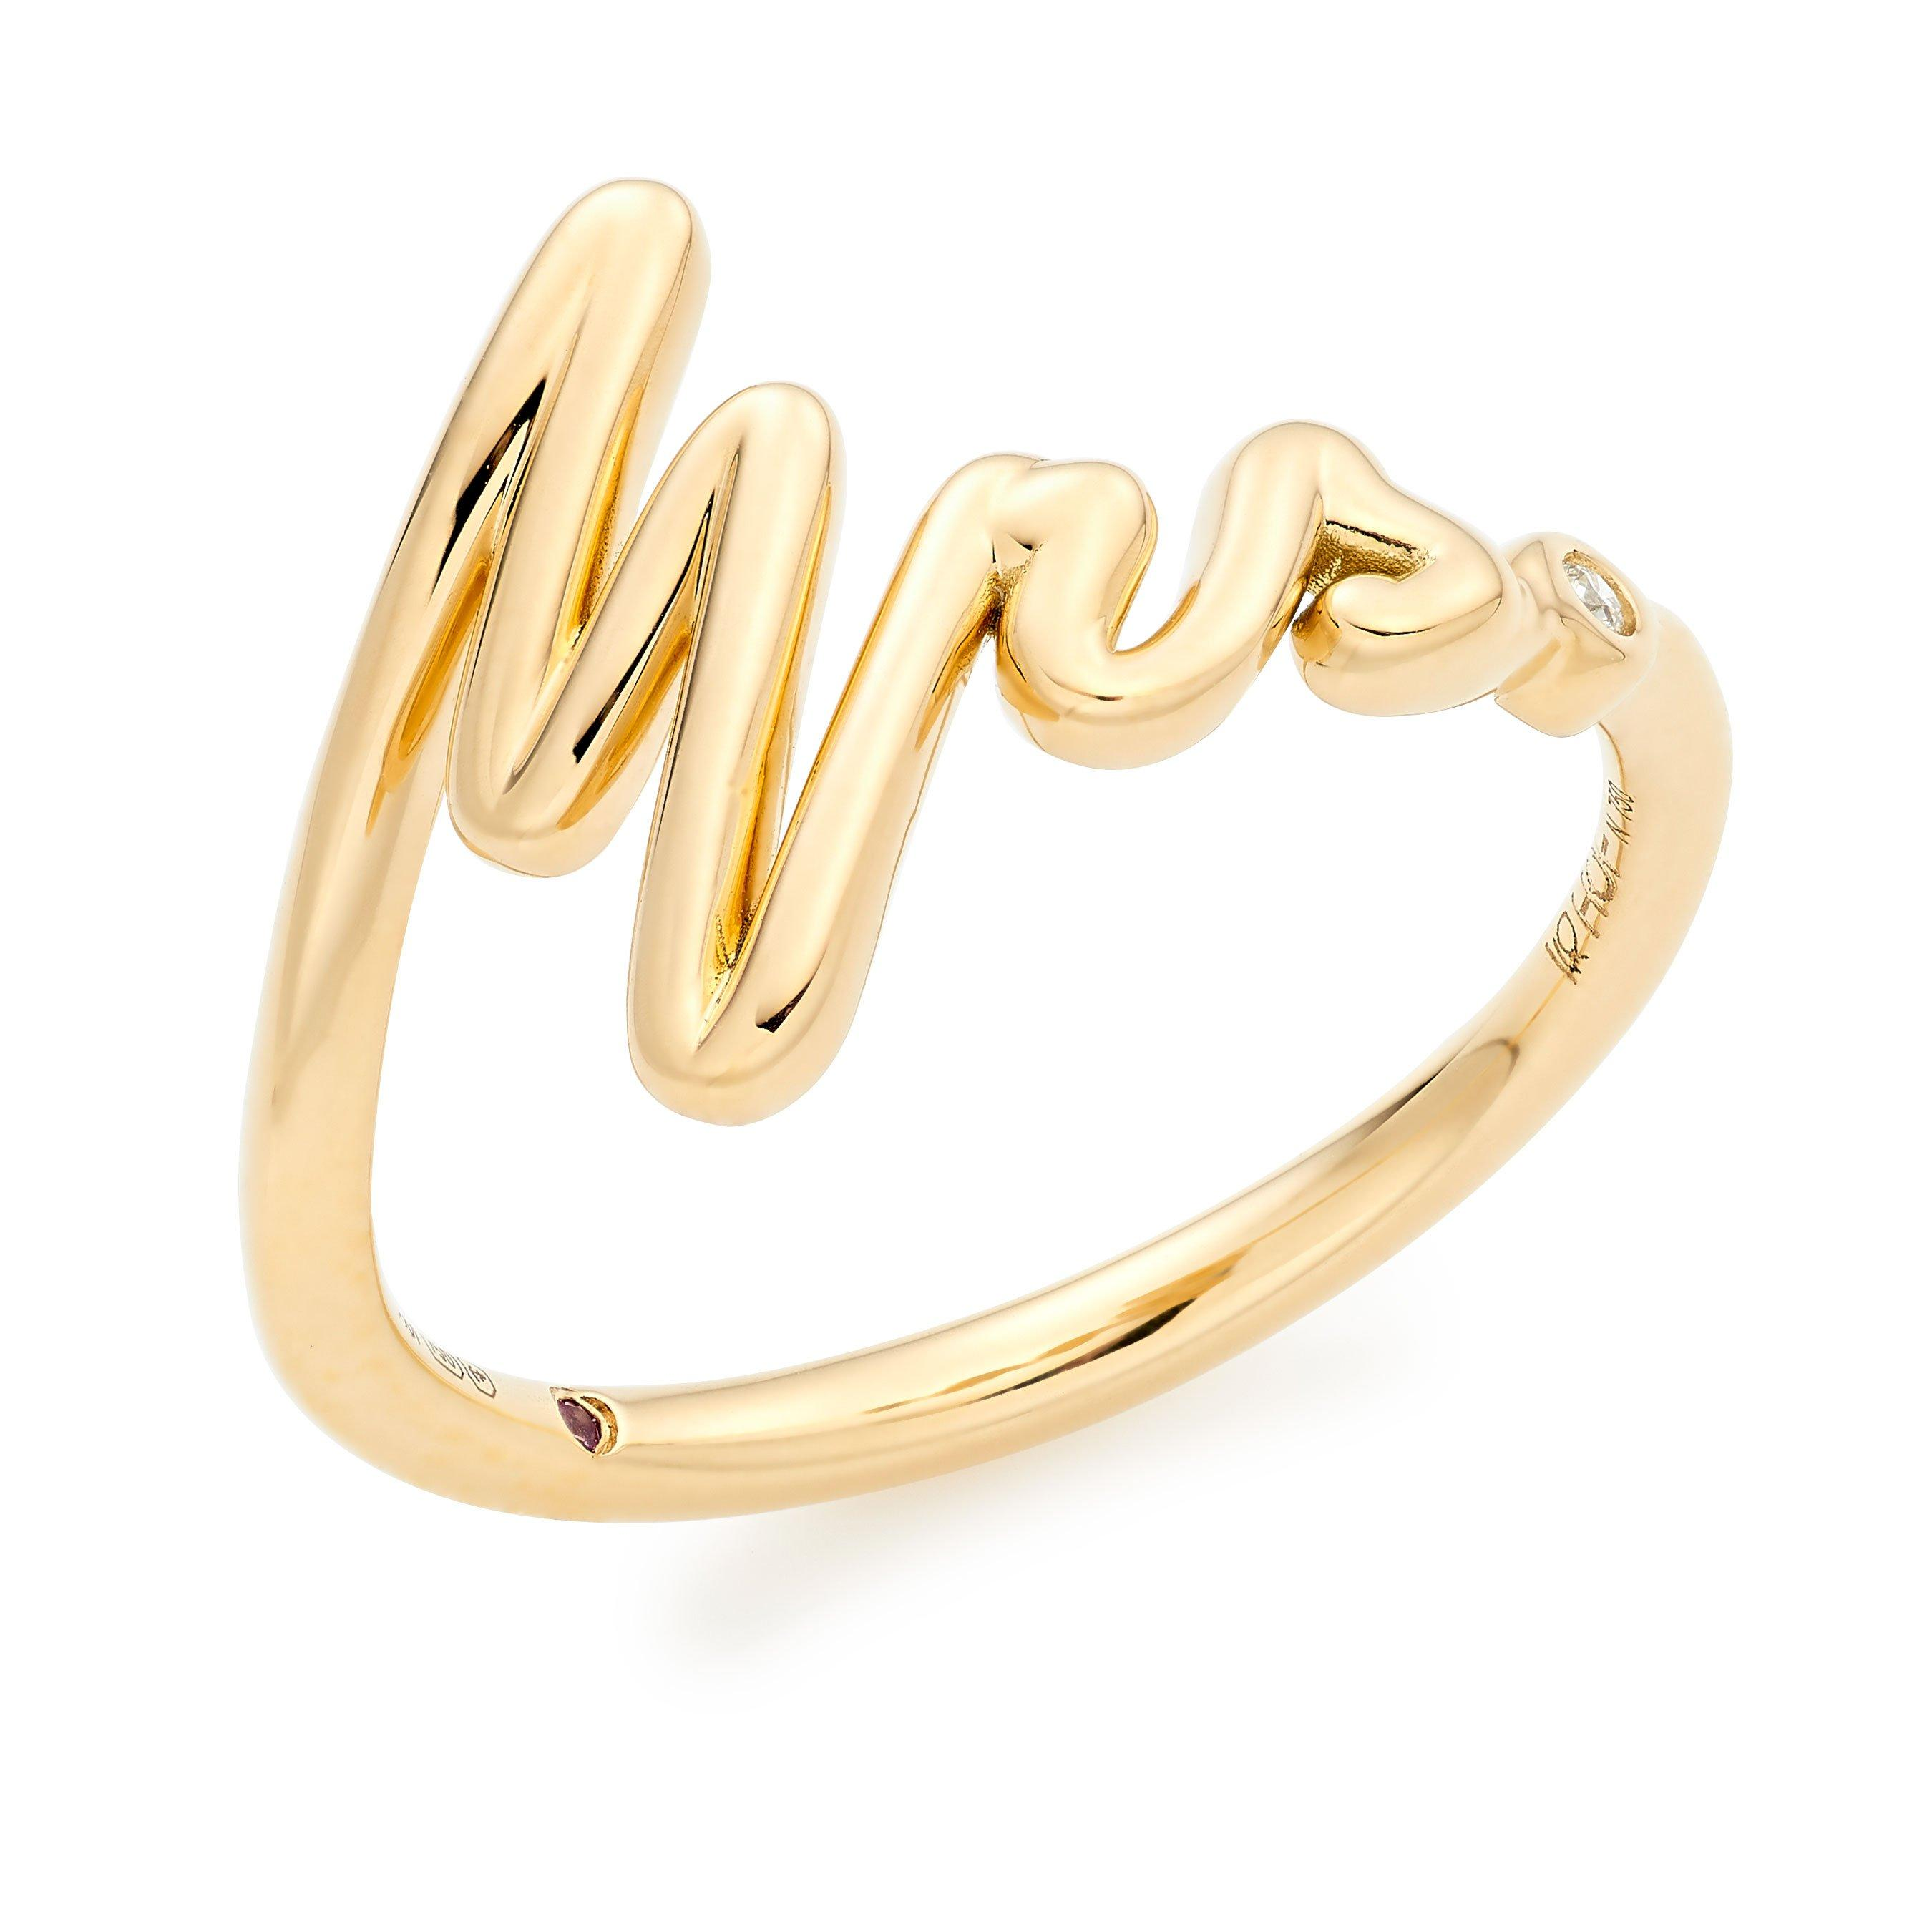 Hearts On Fire Hayley Paige Love Code 18ct Gold Mrs Ring